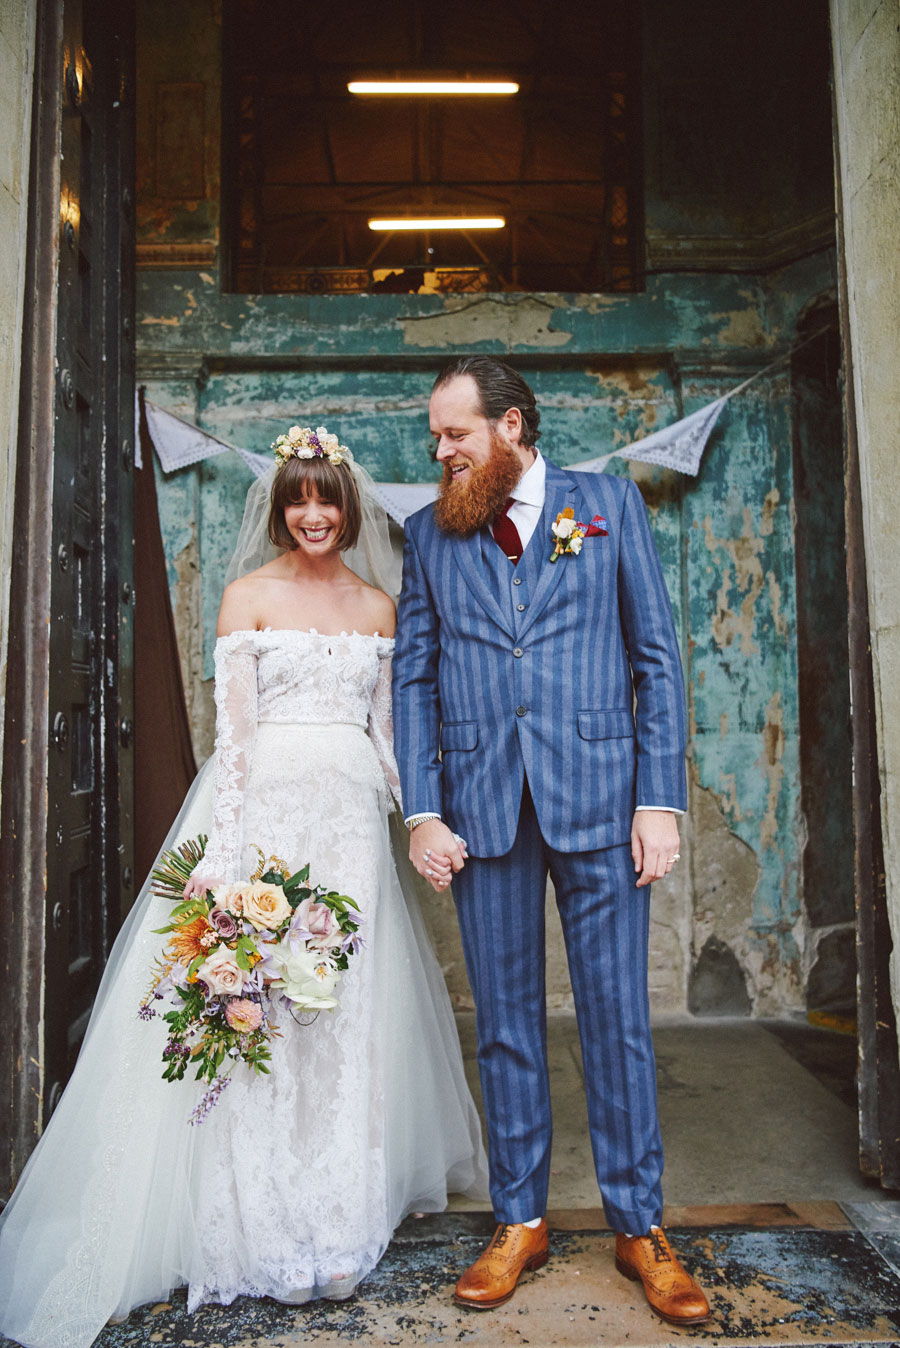 Stunning Off The Shoulder Lace Wedding Dress & Alternative Decaying Chapel Venue Wedding- Ella & Daniel072